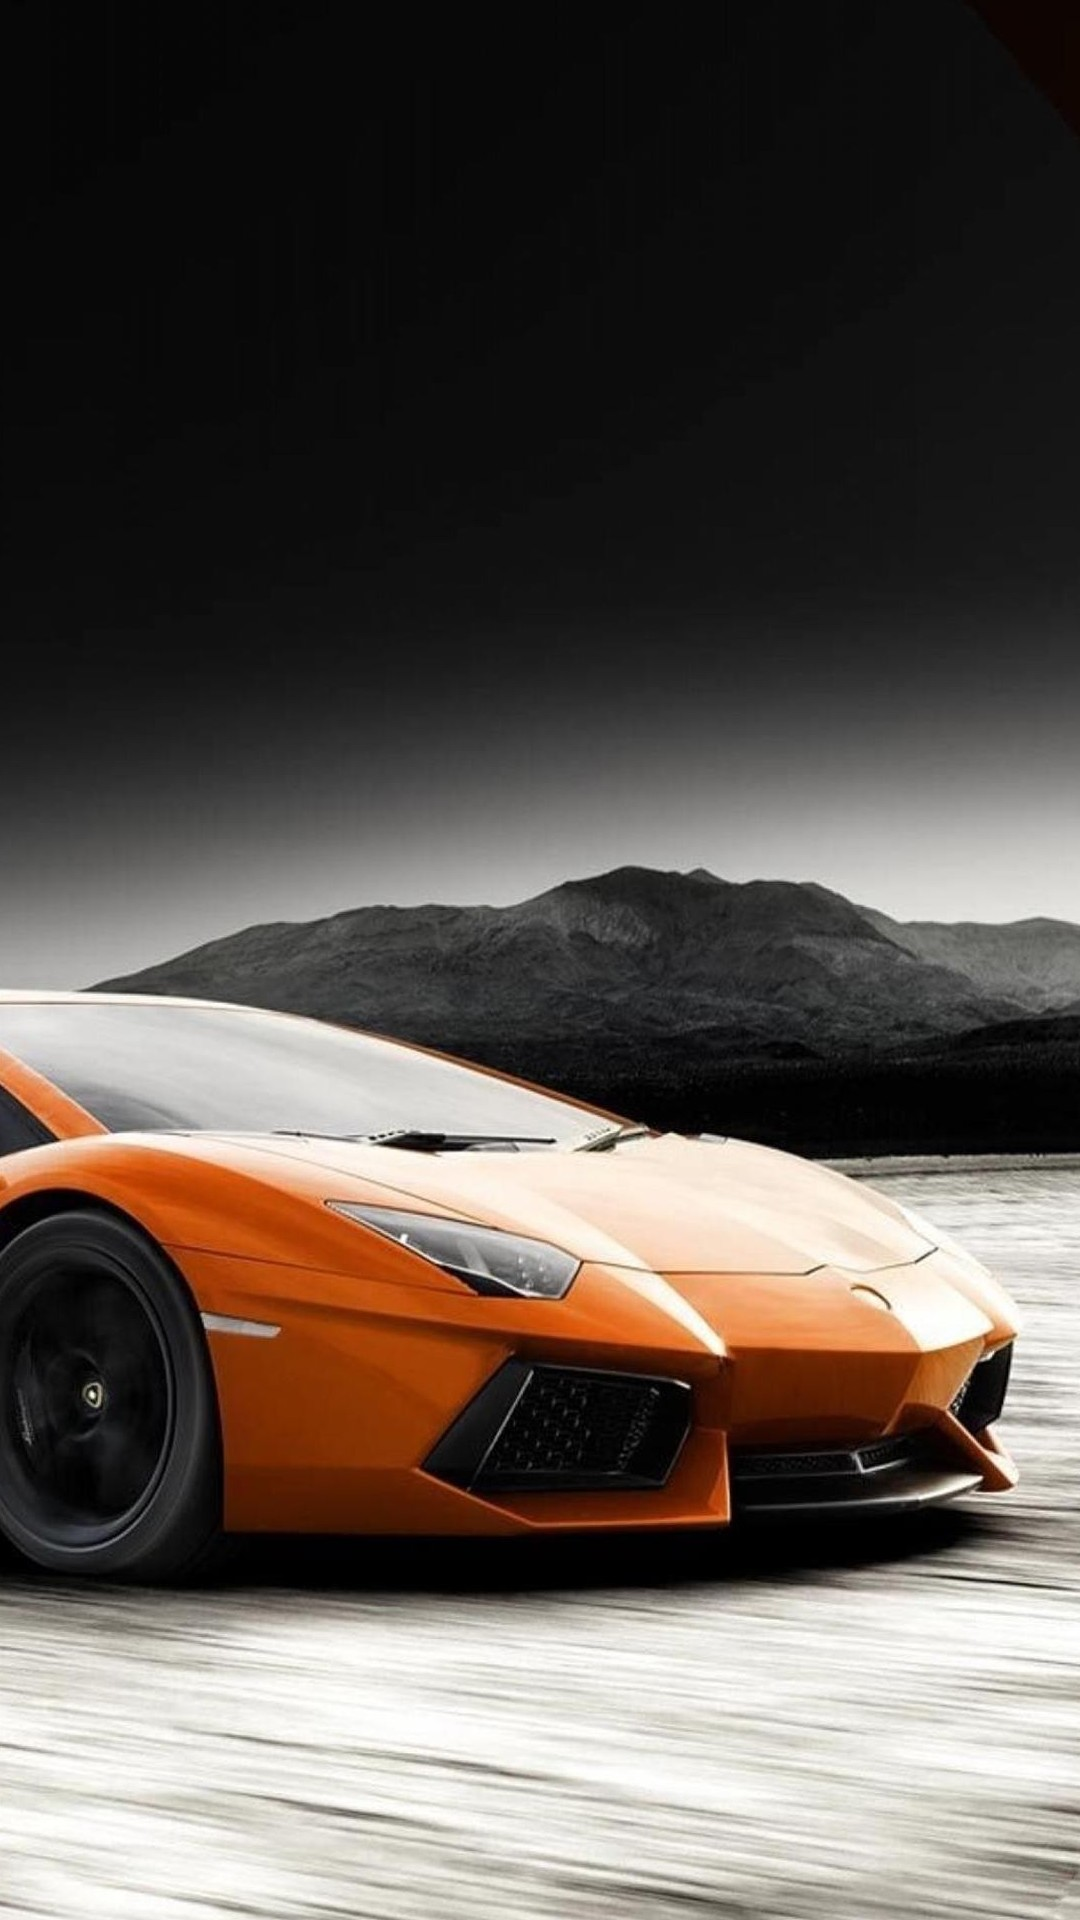 Cool Live Wallpapers For Iphone X 42 Exotic Car Wallpapers For The Speed Lovers